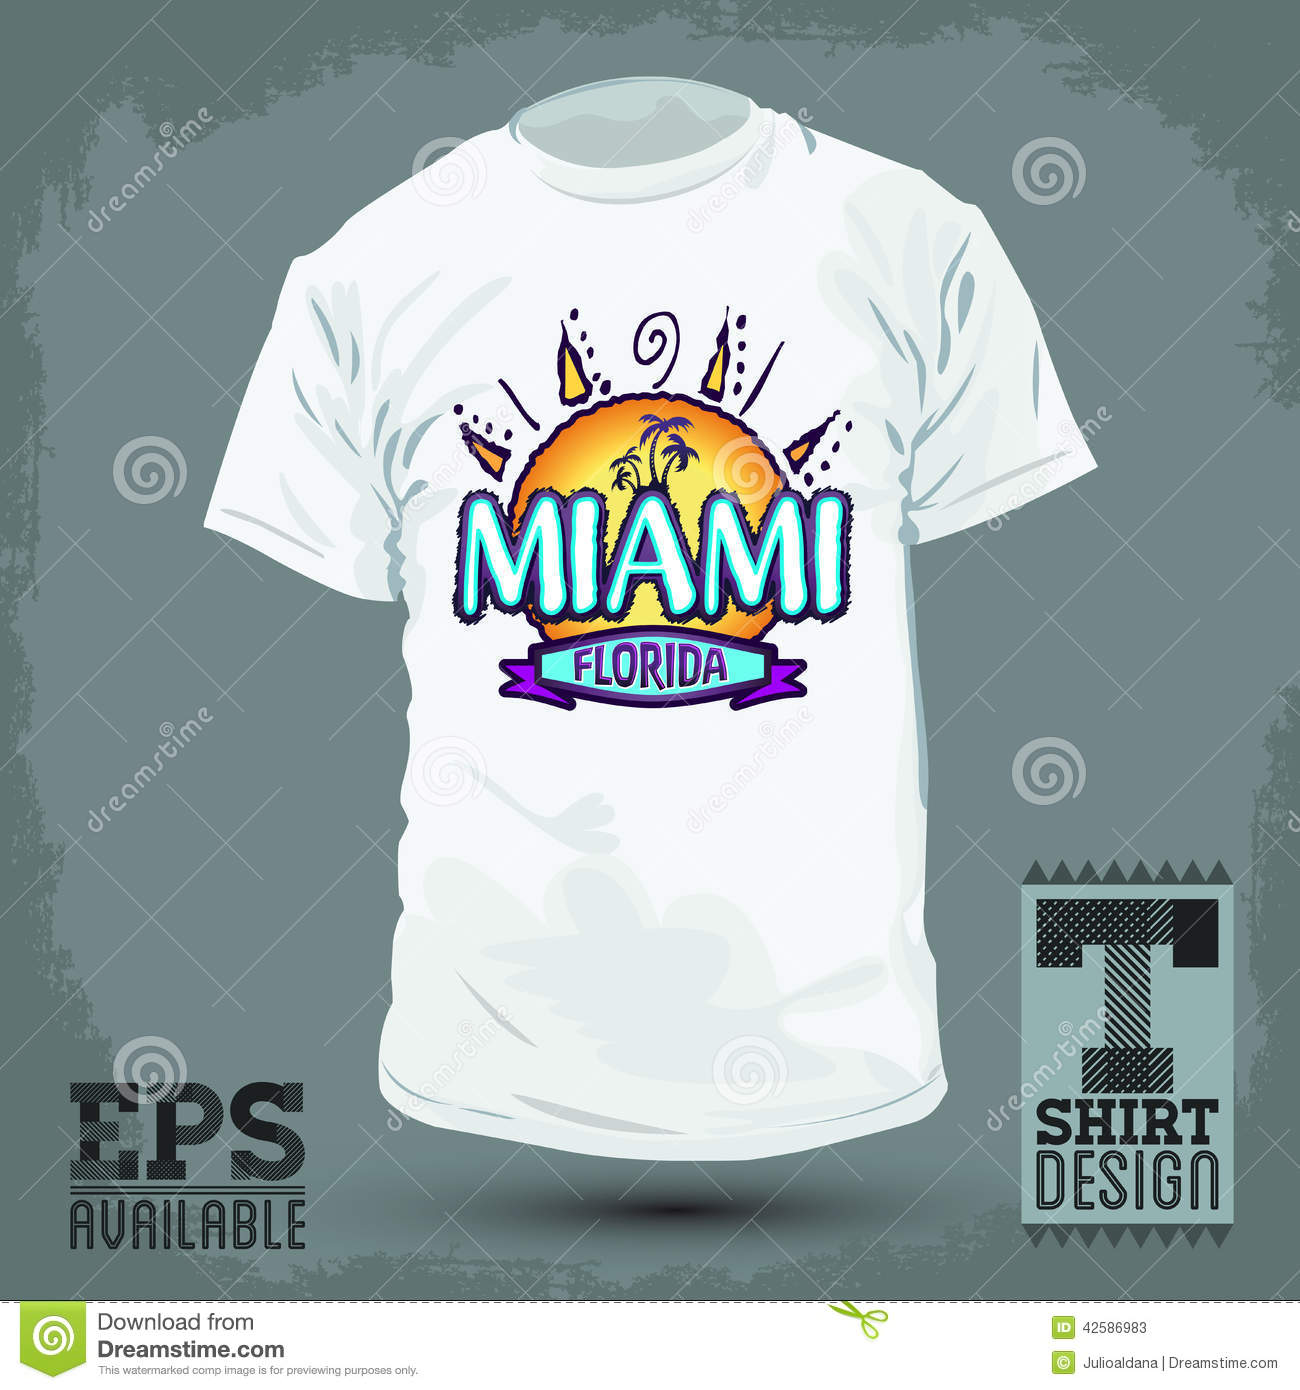 graphic t shirt design miami florida stock vector